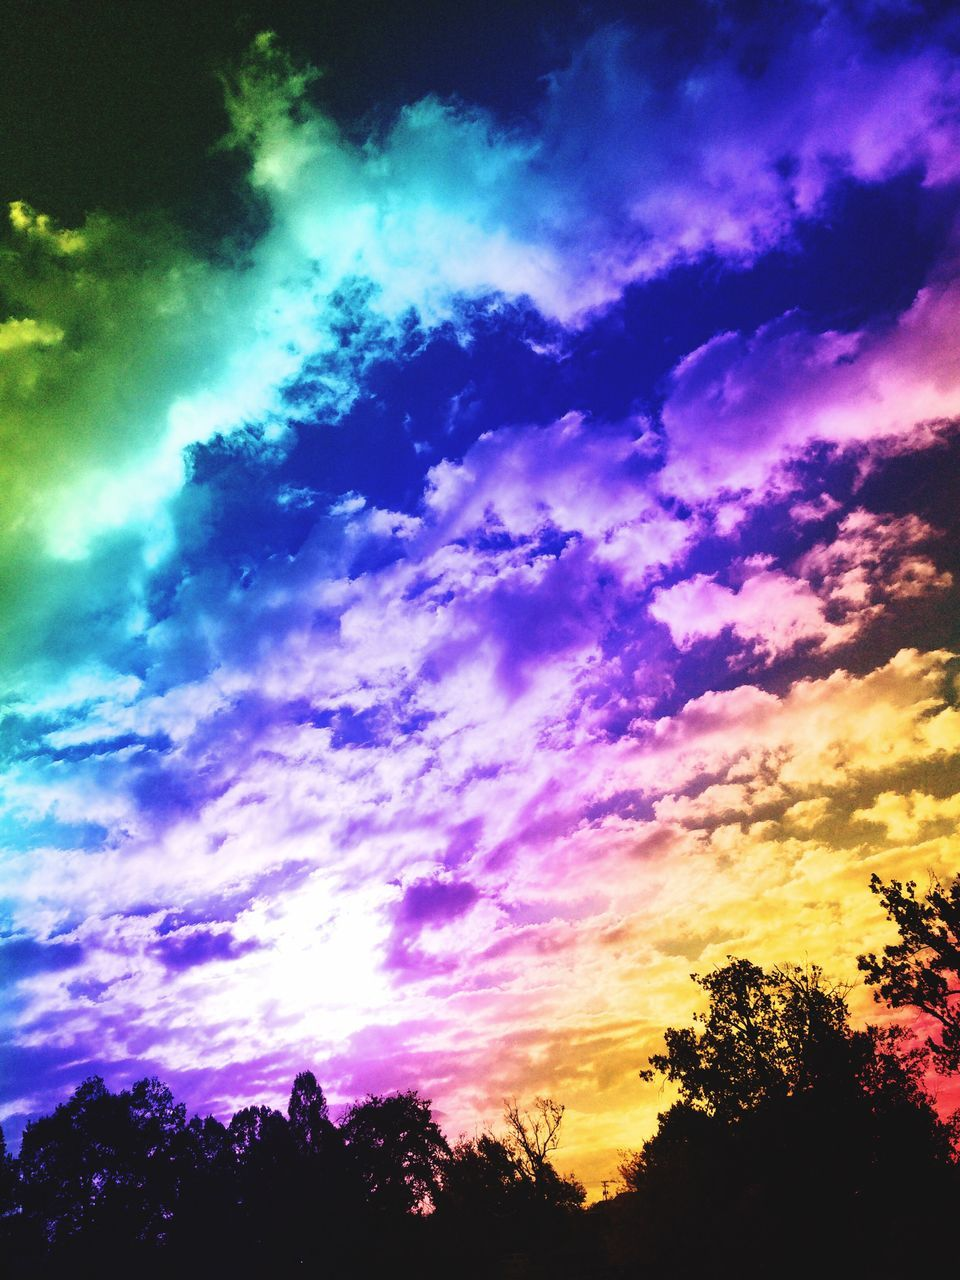 sky, silhouette, sunset, cloud - sky, beauty in nature, scenics, nature, tree, dramatic sky, tranquil scene, no people, tranquility, low angle view, multi colored, outdoors, day